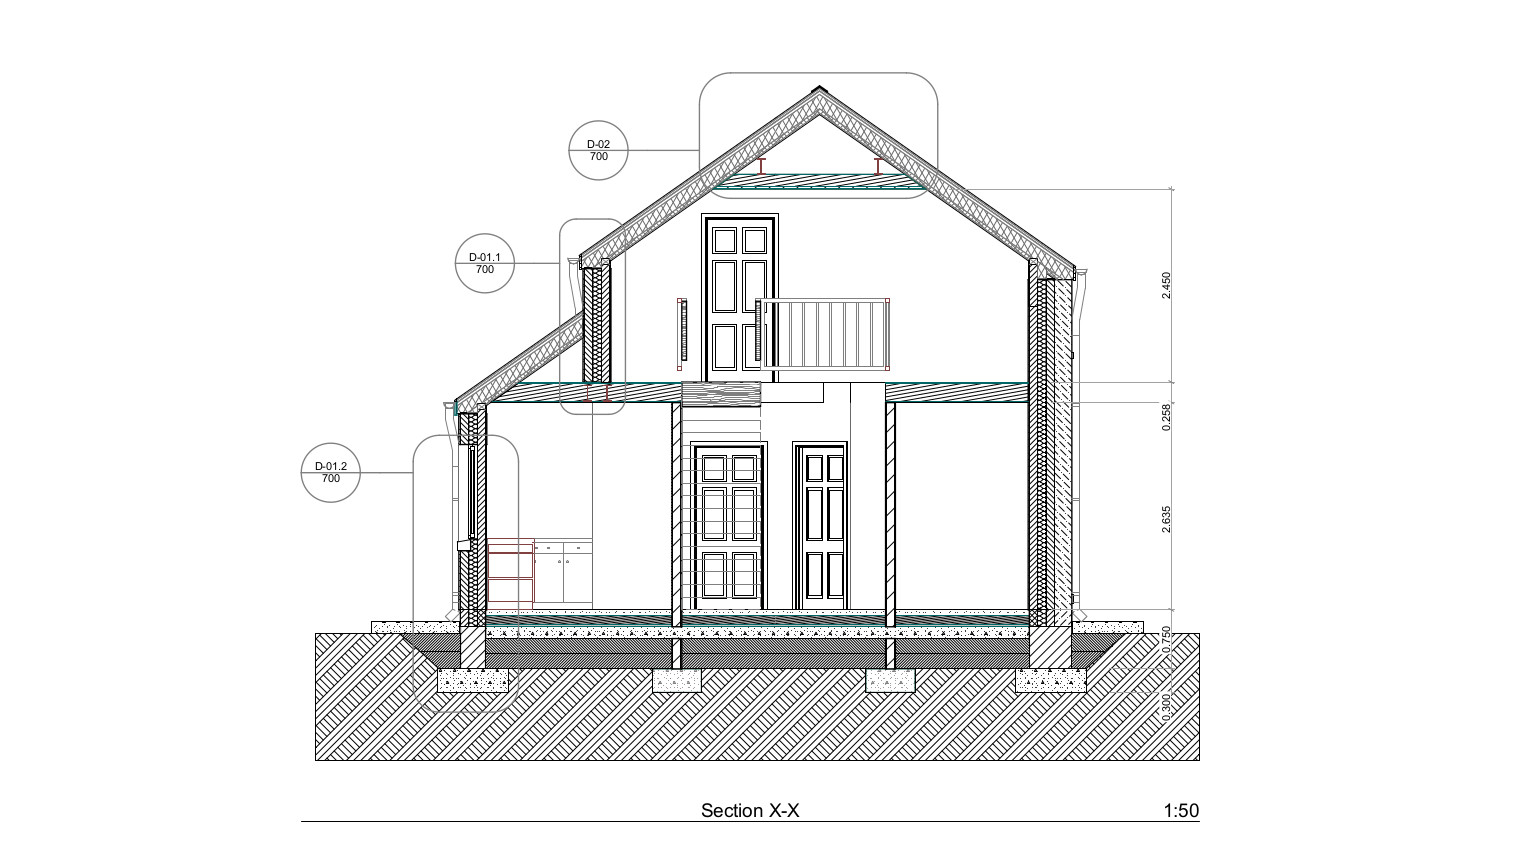 2d Cad Drafting   Autocad Conversion   Services